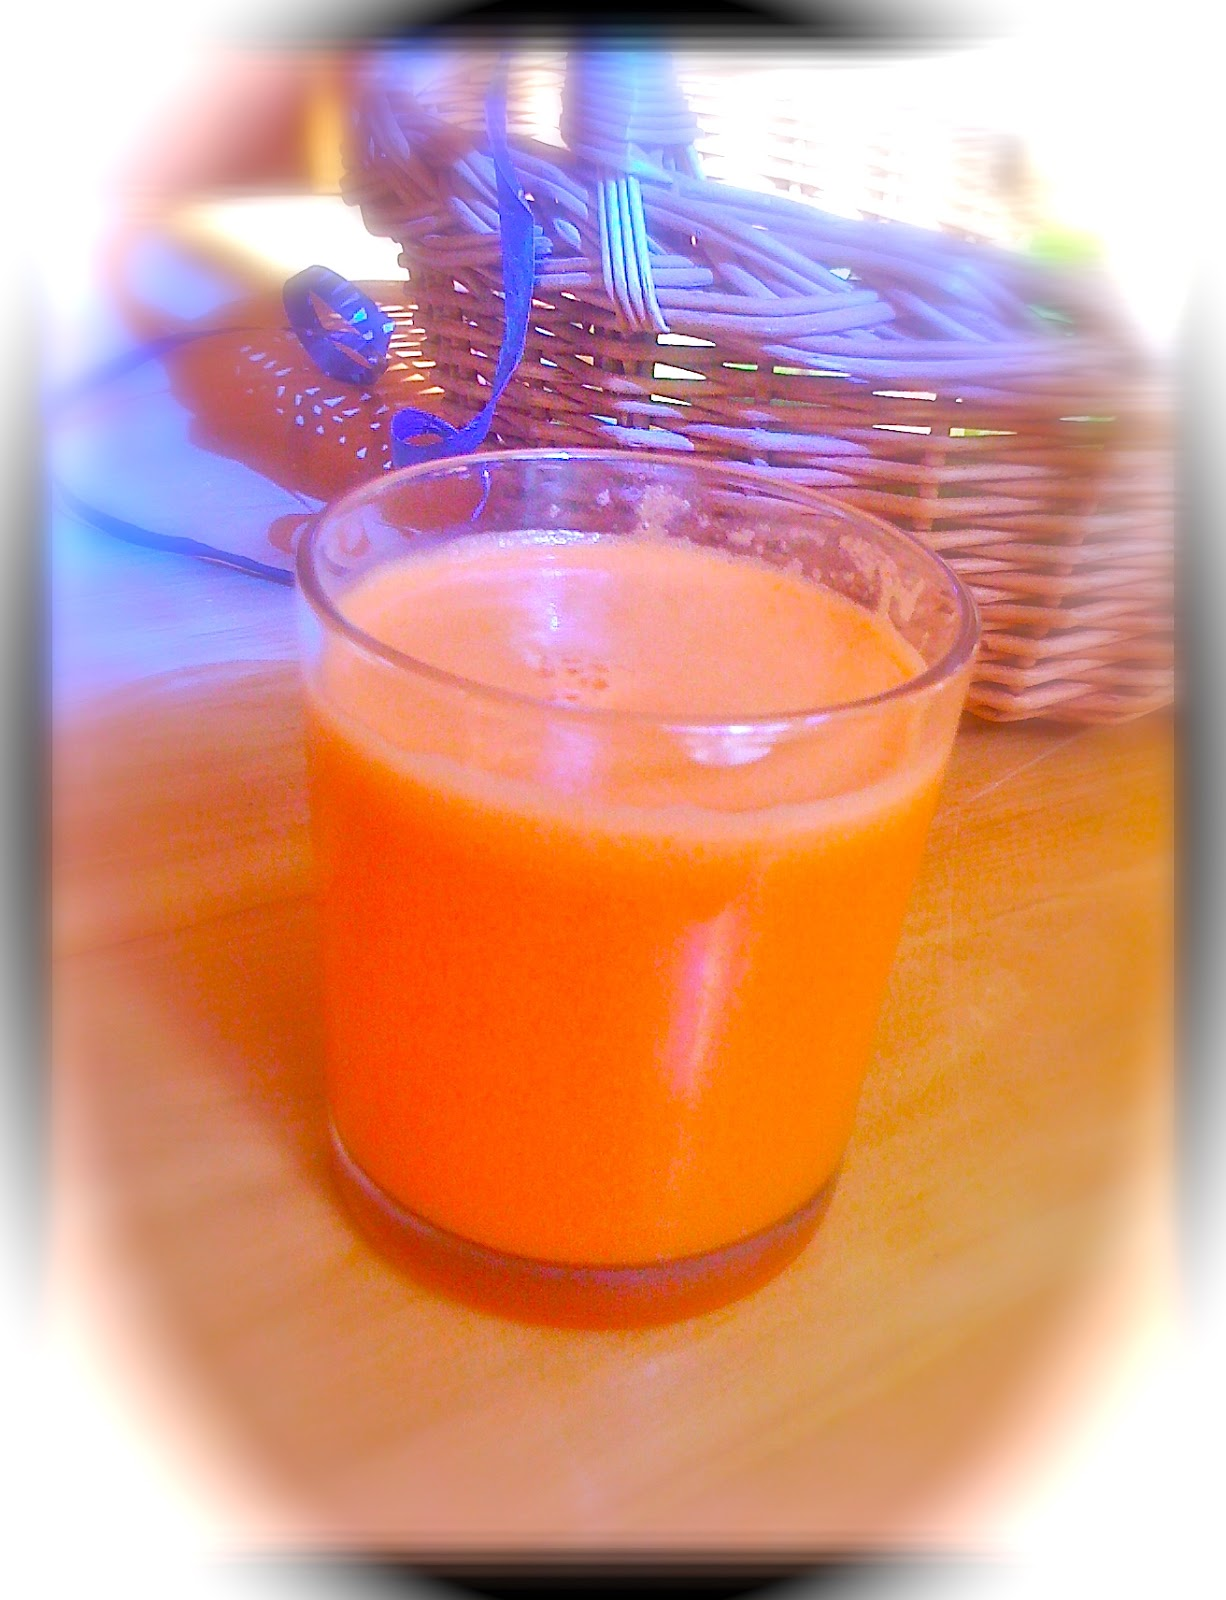 Vegan Recipes: Ginger, Carrot and Pear Juice